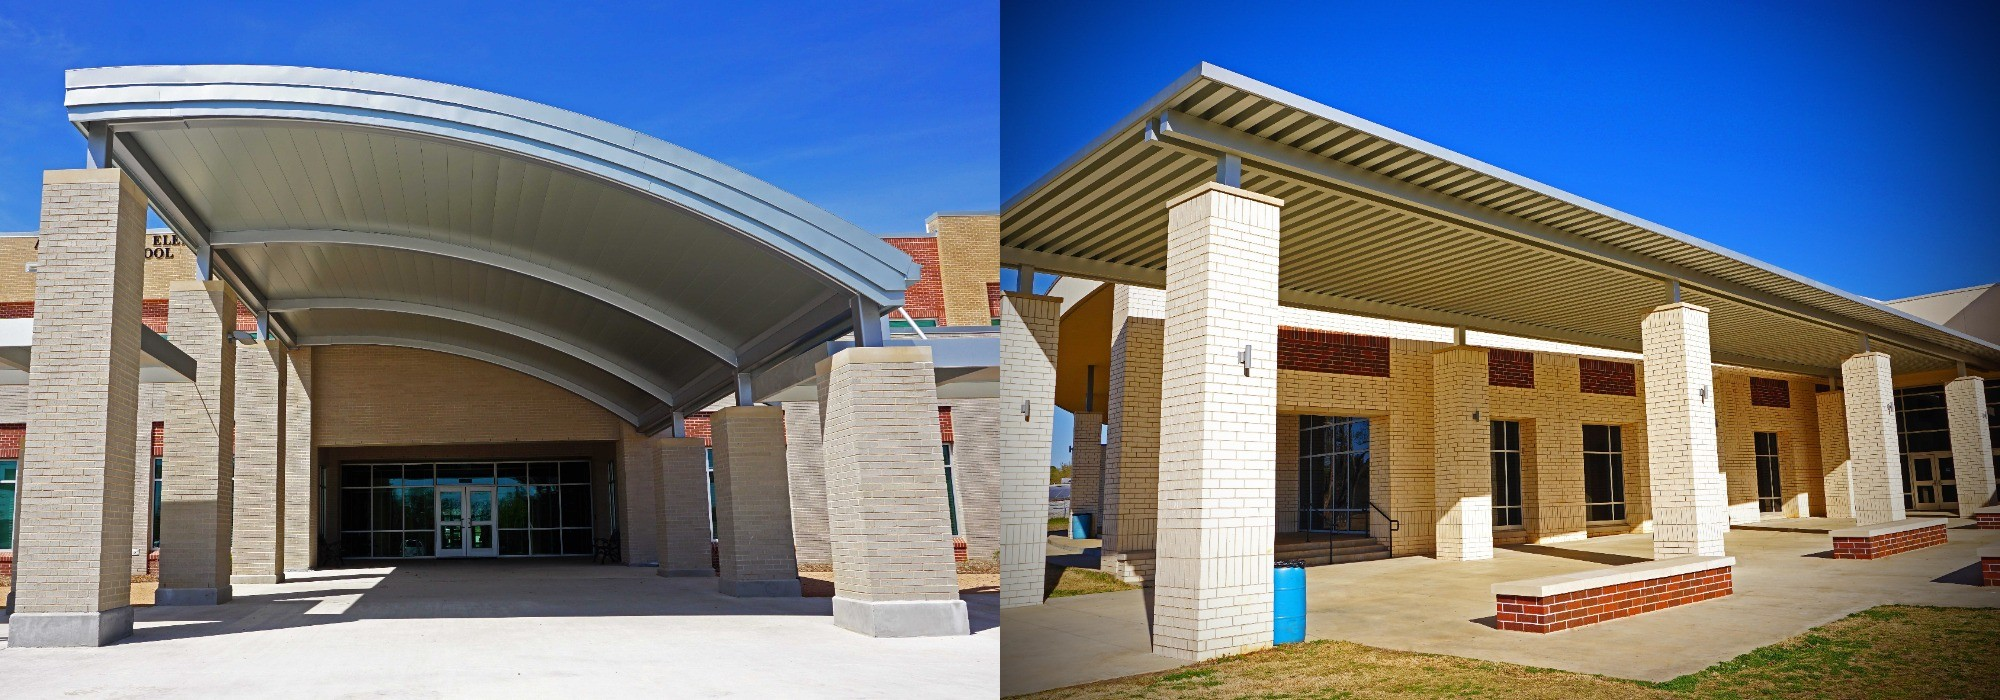 Aluminum Canopies and Awnings & Architectural Canopies and Awnings | Precision Structural Engineering